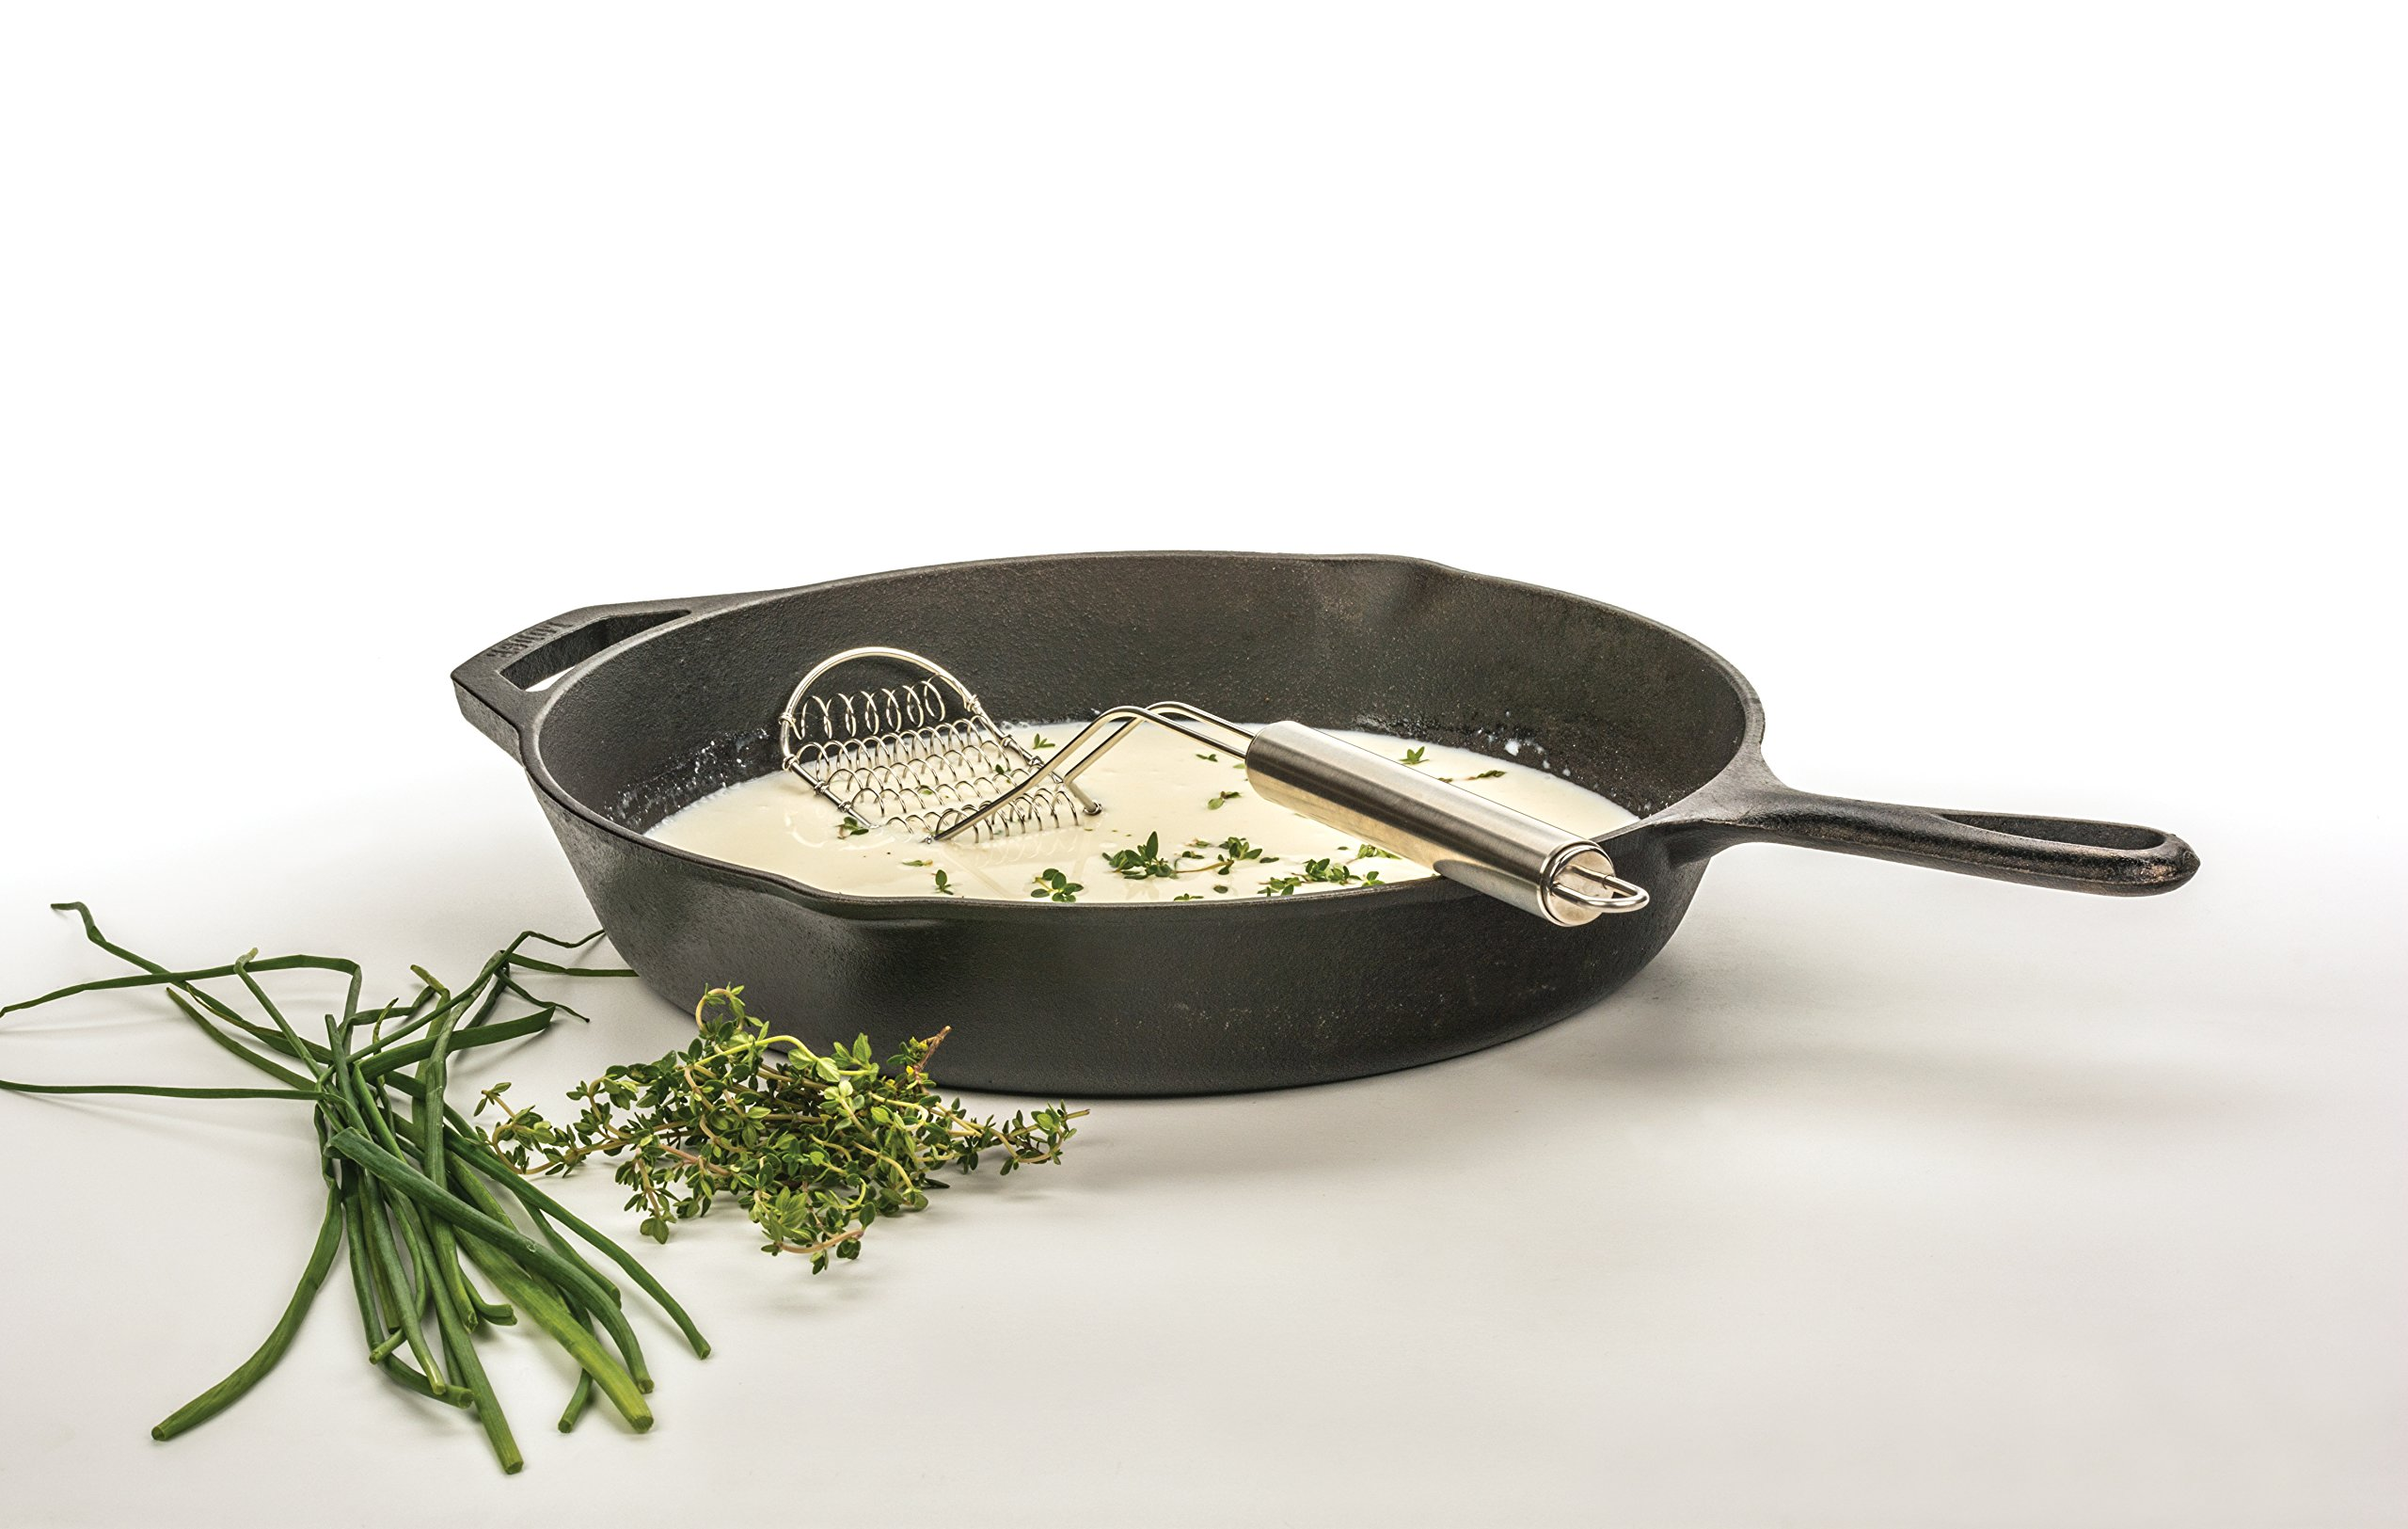 RSVP FSW-14 18/8 Stainless Steel Flat Sauce Whisk by the Everyday Gourmet by RSVP International (Image #2)